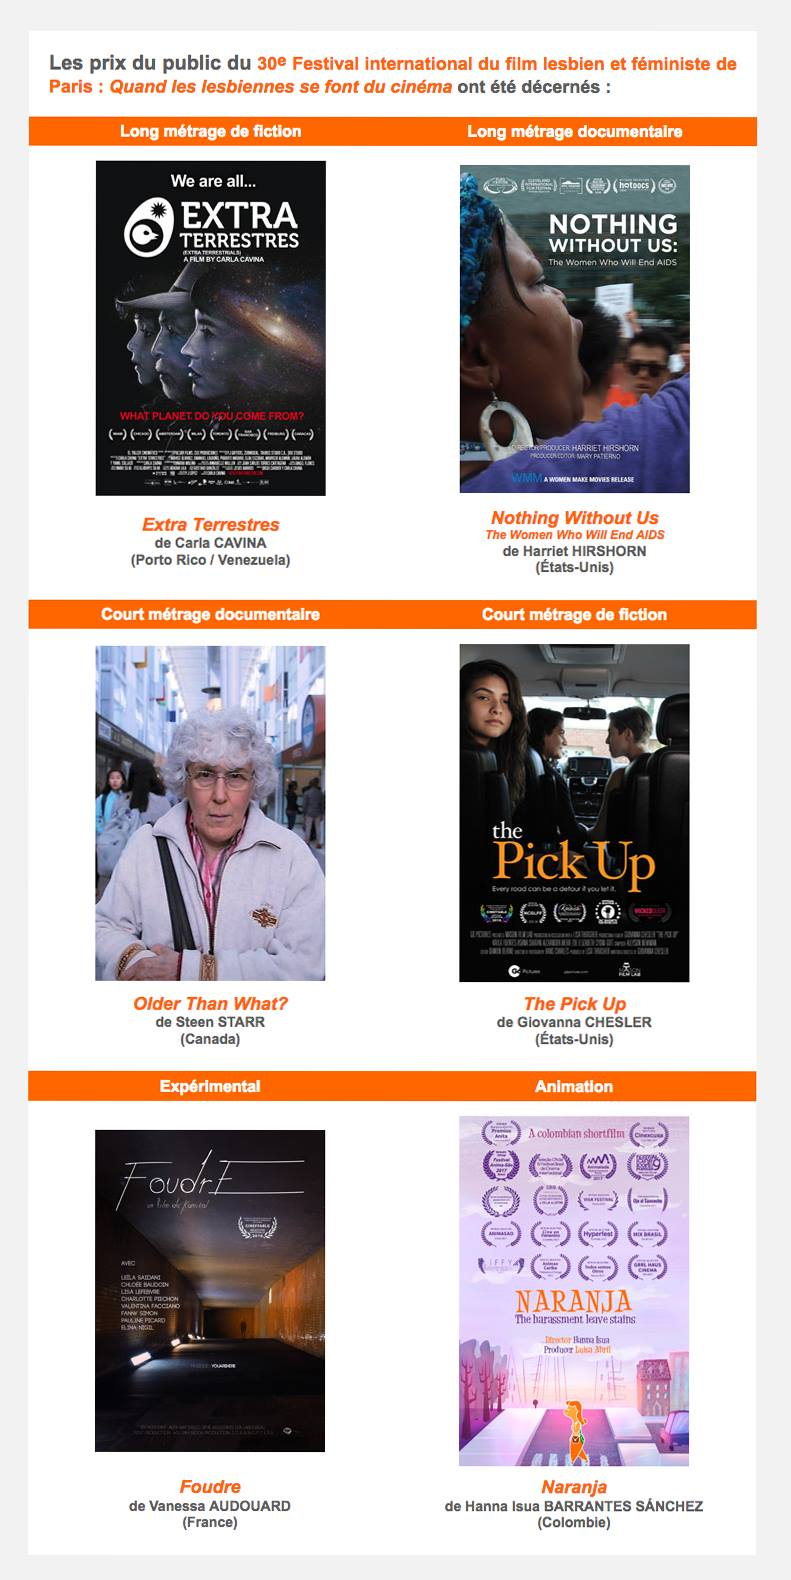 The Pick Up awarded Best Short Film - Awards for The Pick Up! Cineffable - the Paris Lesbian and Feminist Film Festival celebrated their 30th anniversary in 2018 and the audience awarded The Pick Up best short fiction film. In Montreal at the image+nation Film Festival, the awarded The Pick Up Best Best Short Film. And in Carbondale, Illinois at the 41st Big Muddy Film Festival the Jury Awarded The Pick Up an award for Screenwriting. Merci!